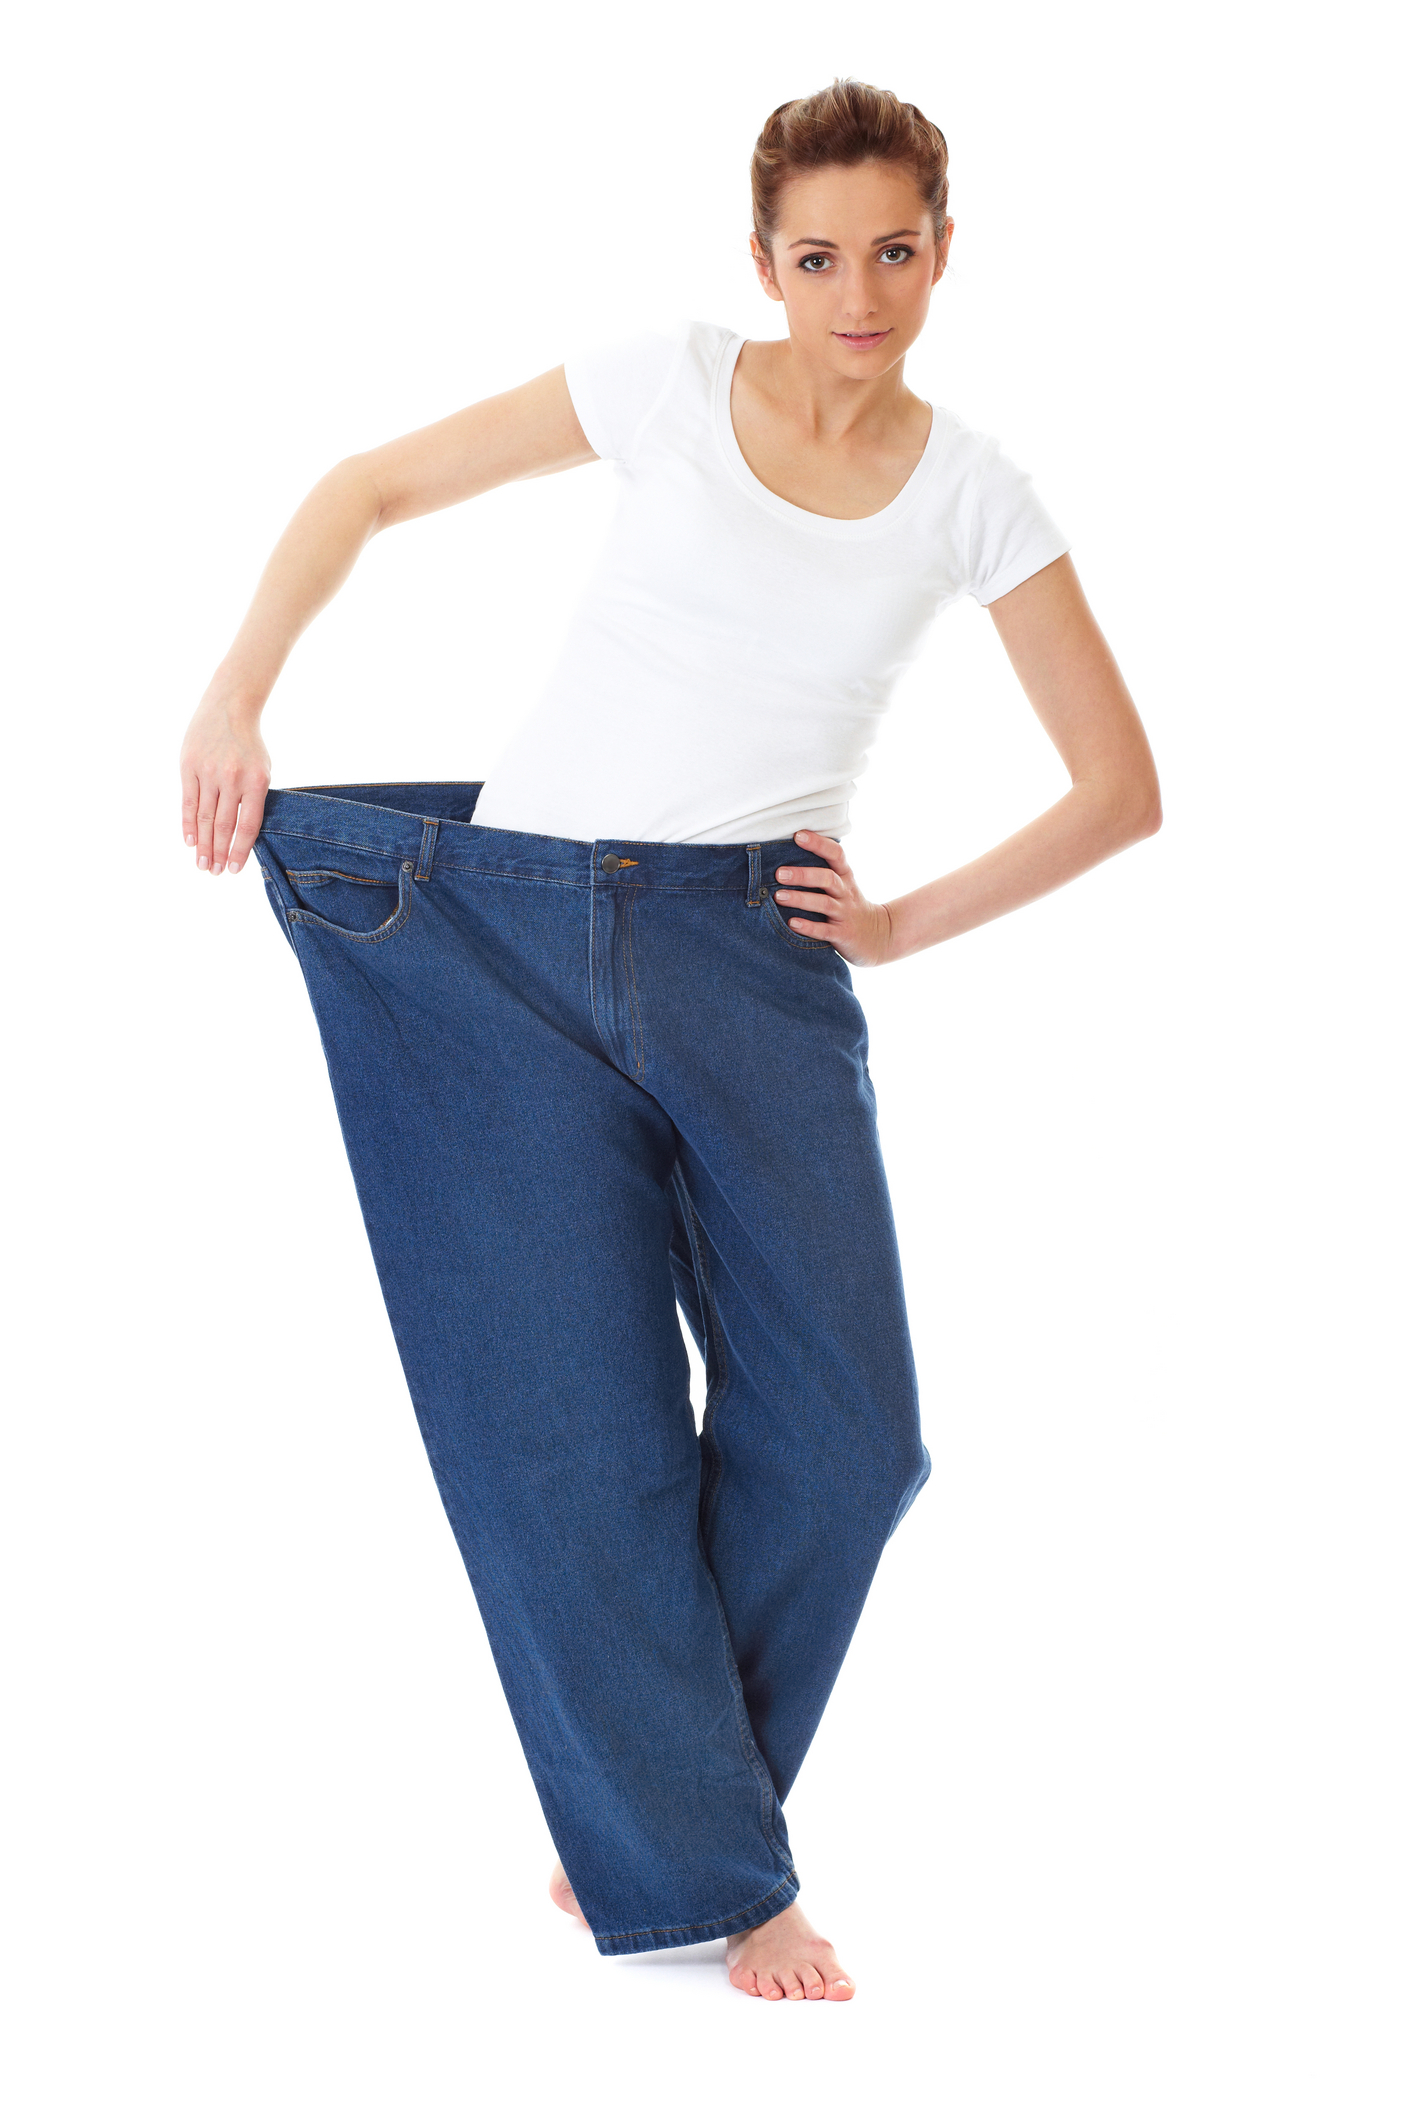 Effective Medical weight Loss at Florida Aesthetics and Medical Weight Loss in Brandon, Fl